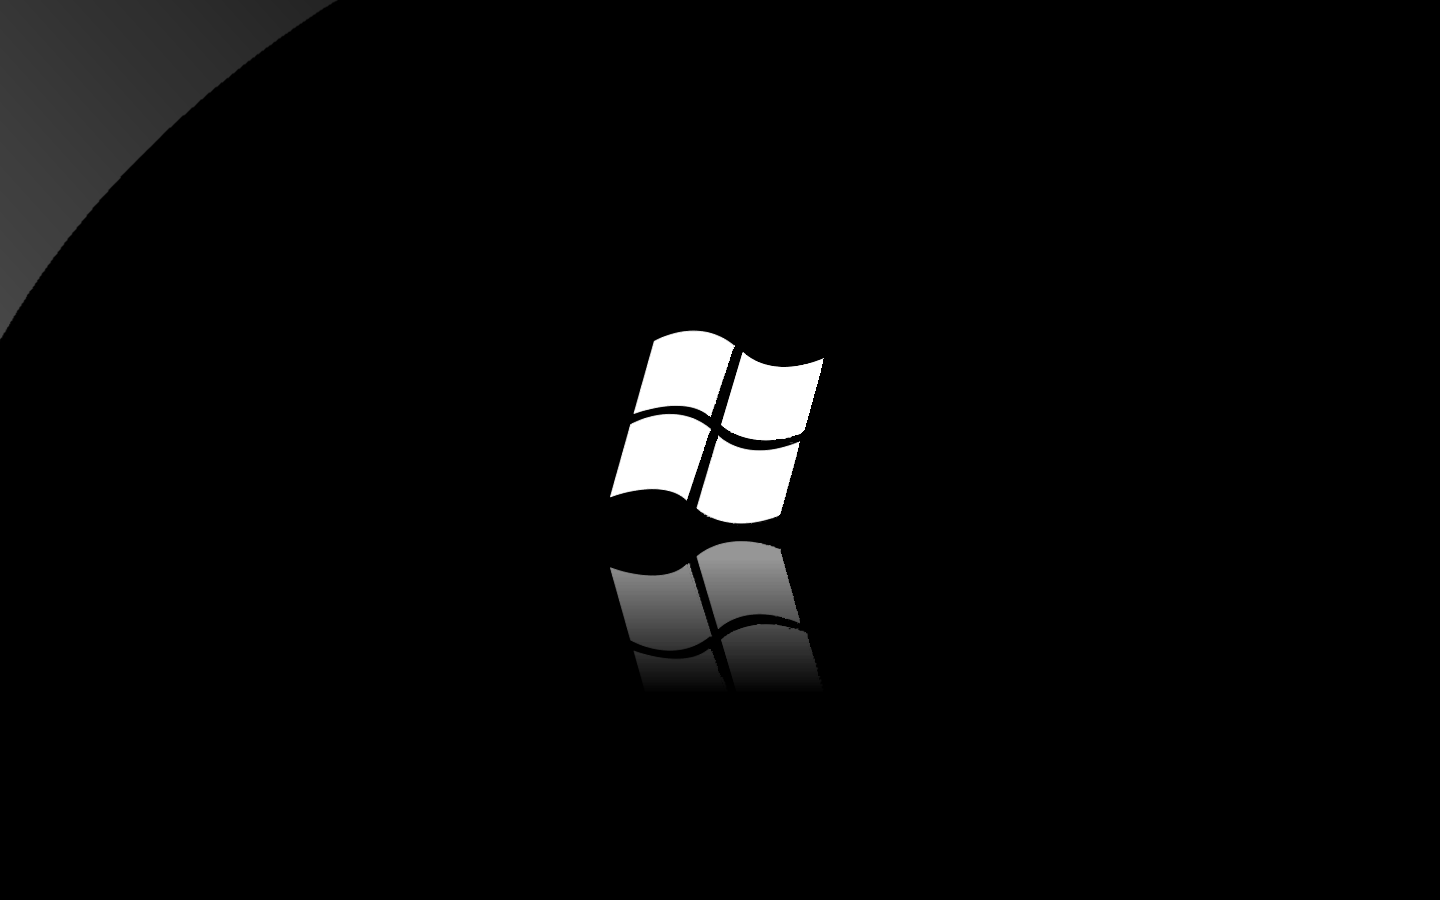 Wallpaper, Microsoft (38689892)